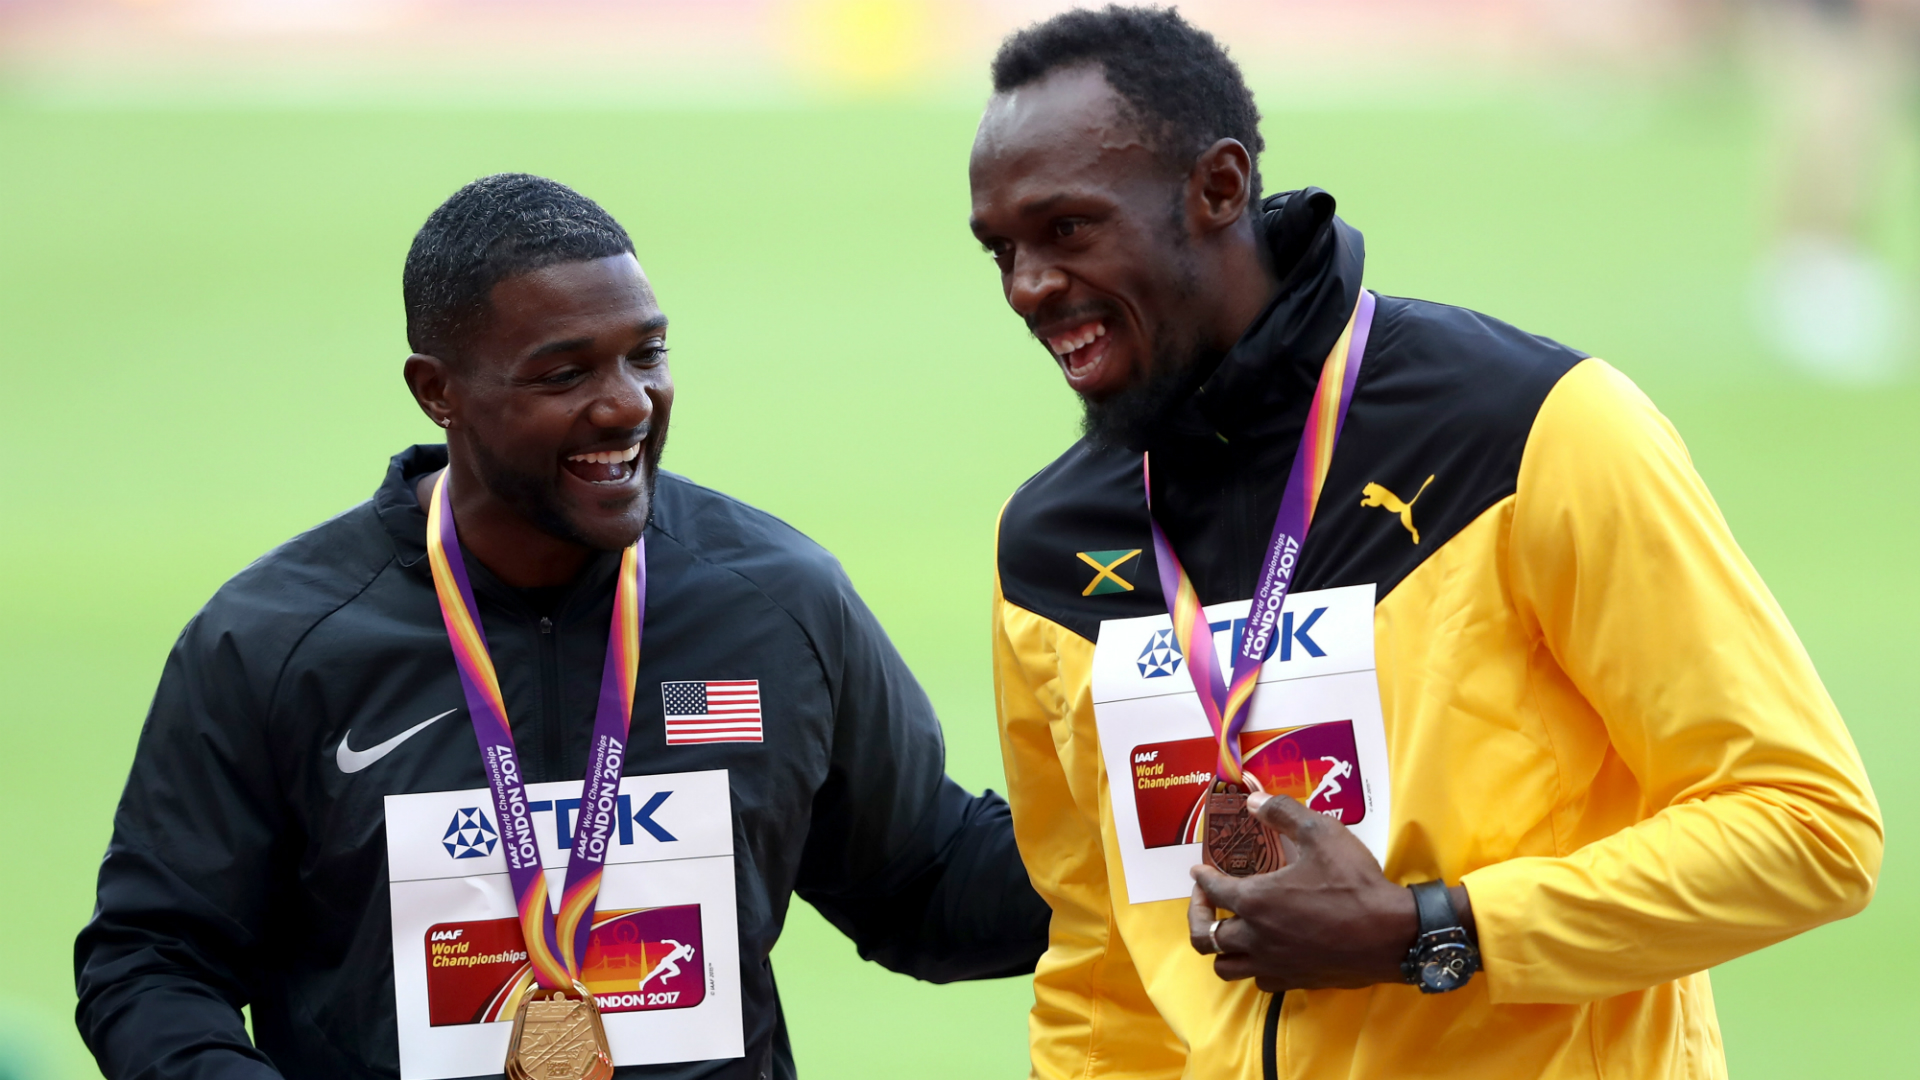 Justin Gatlin: American sprinters ready to rule the world in post-Usain Bolt era